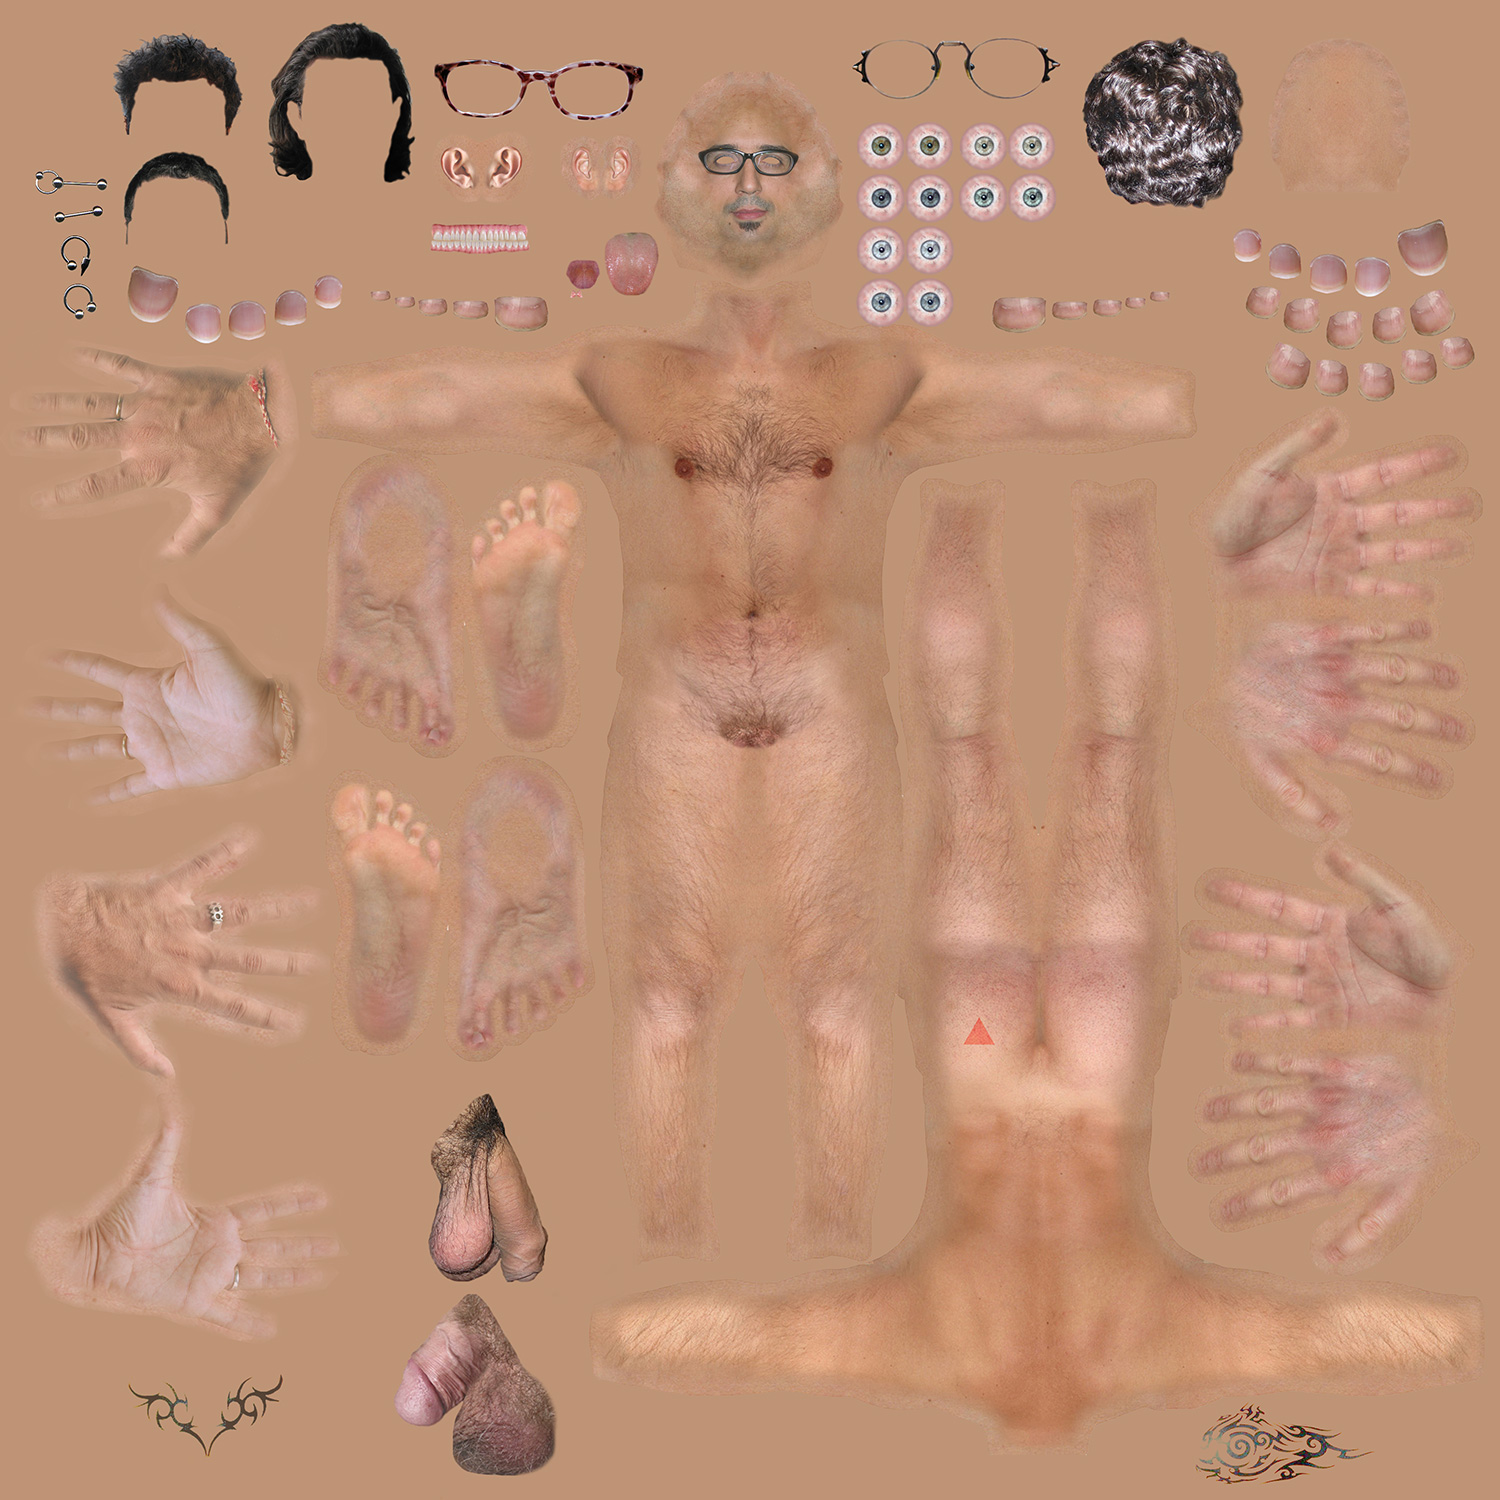 The components of a male body is laid out against a beige background.